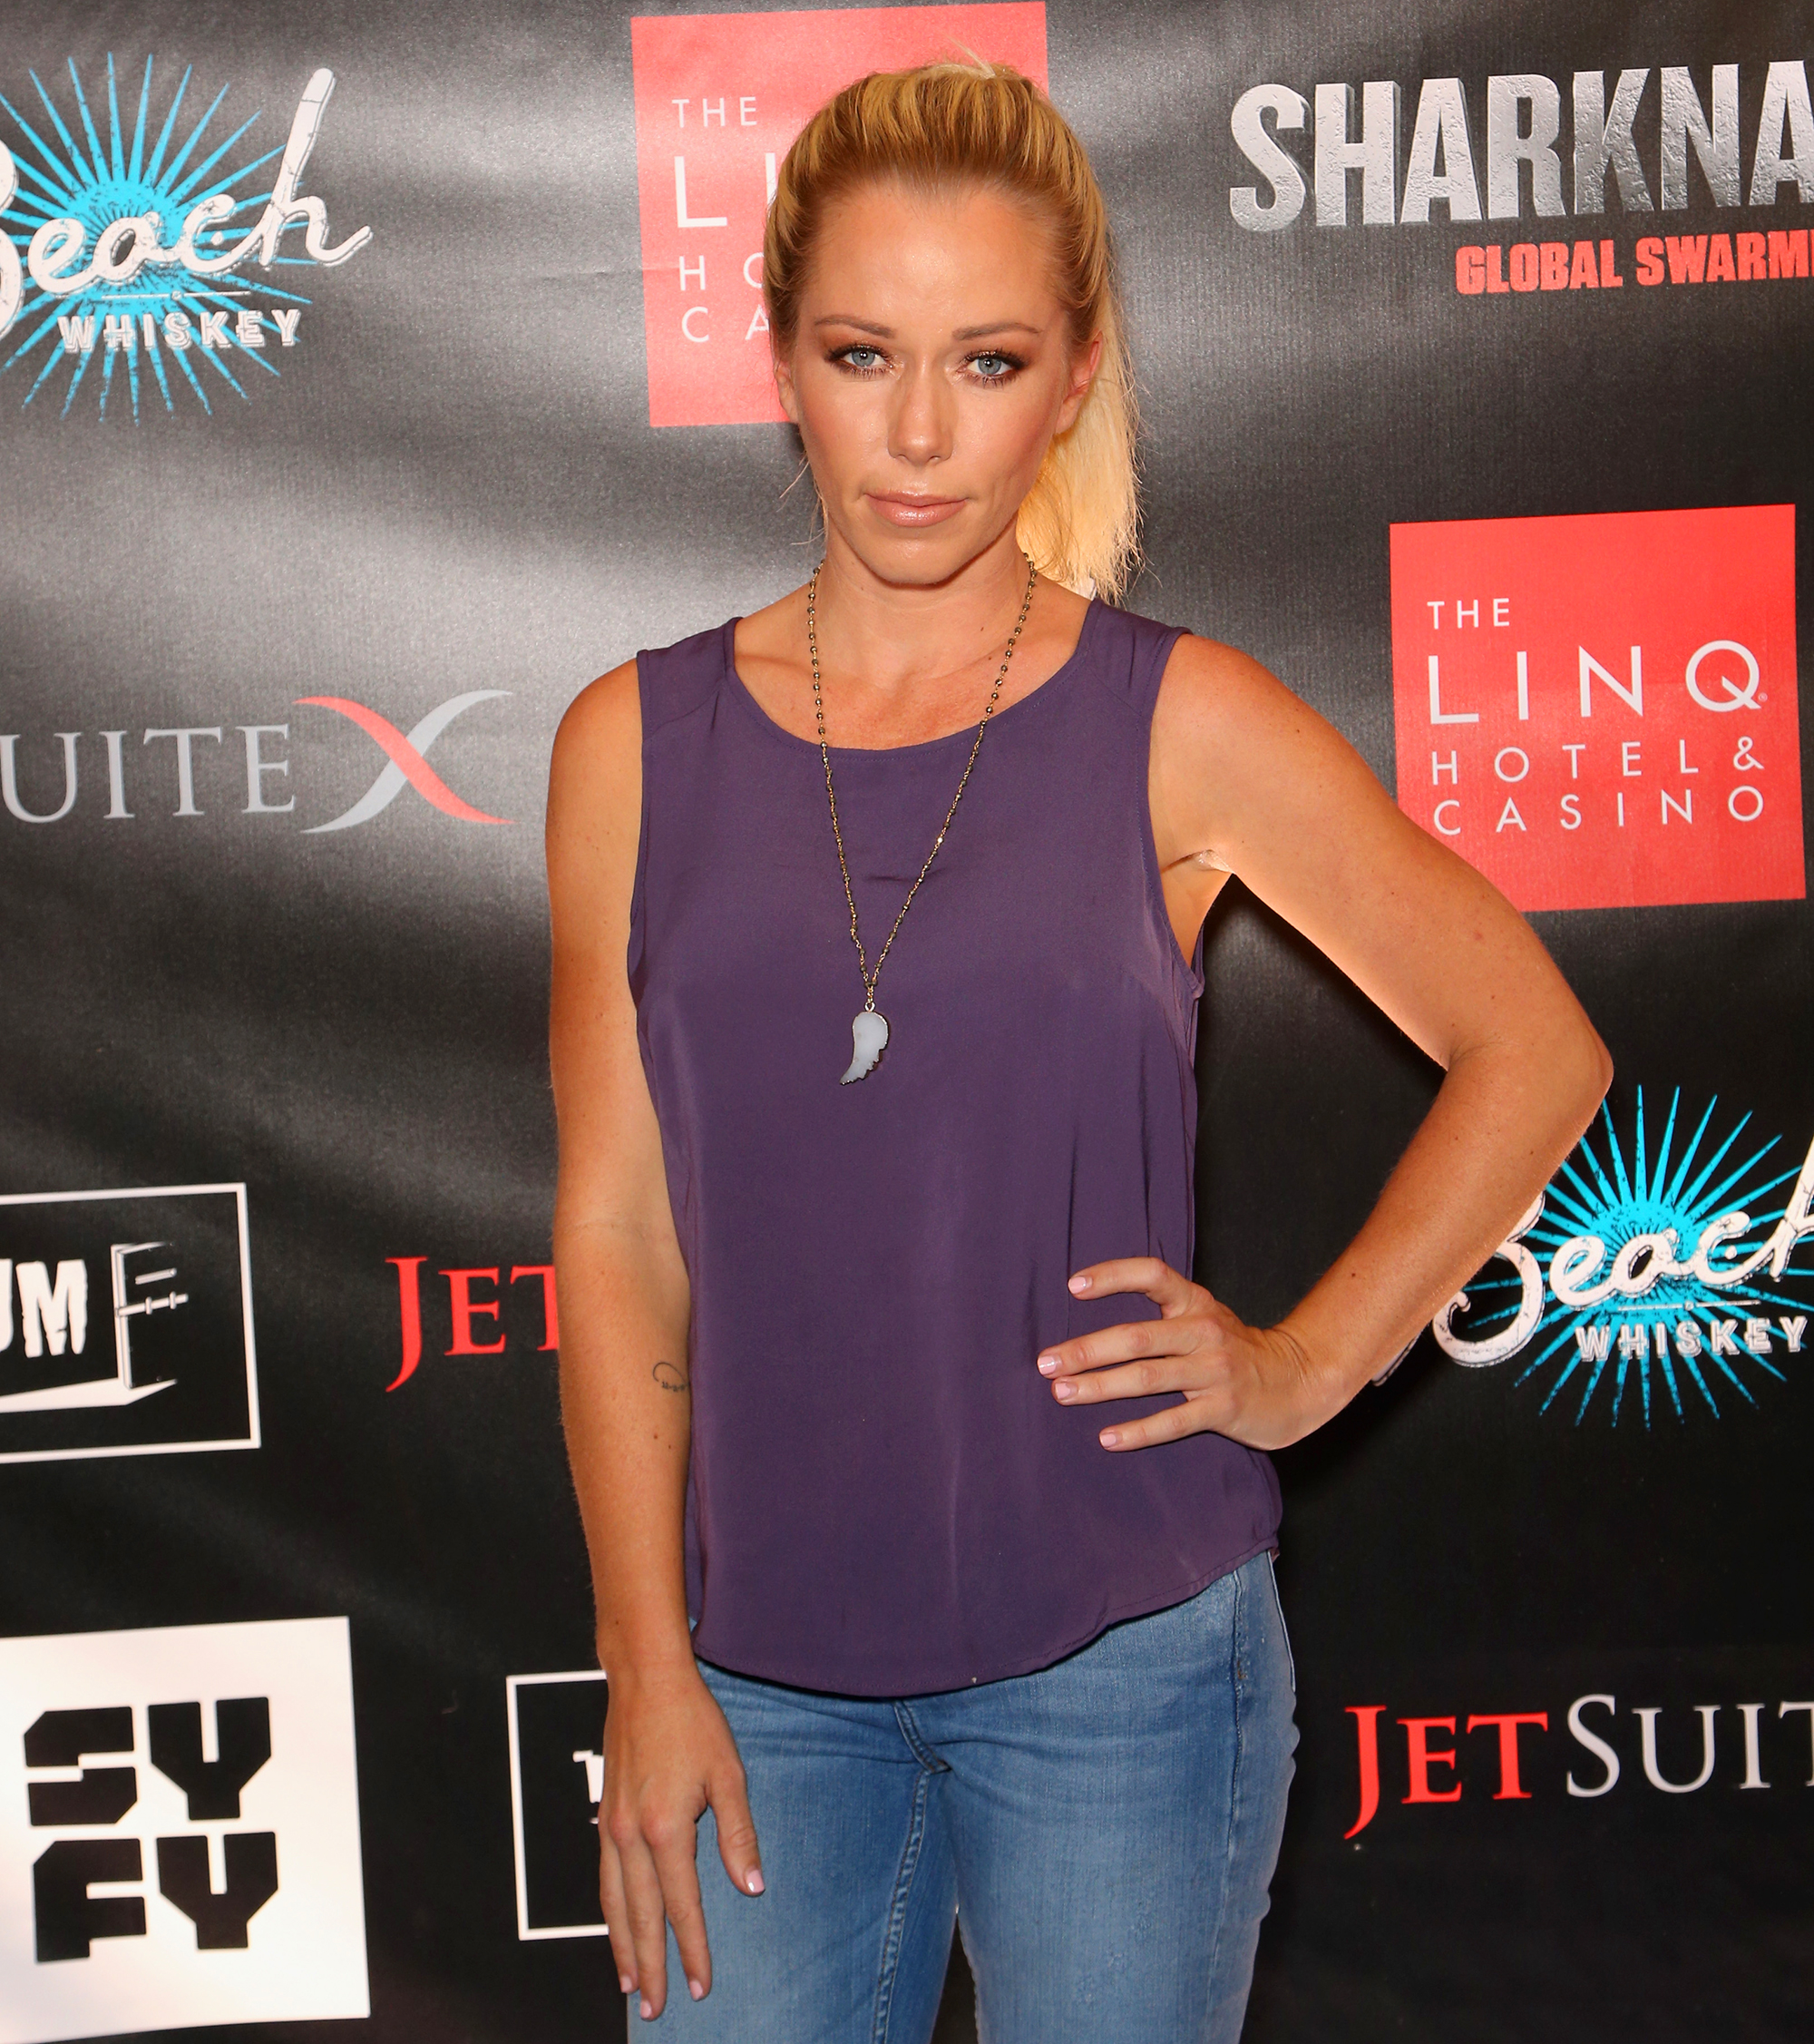 Kendra Wilkinson Officially Announces Divorce From Hank Baskett